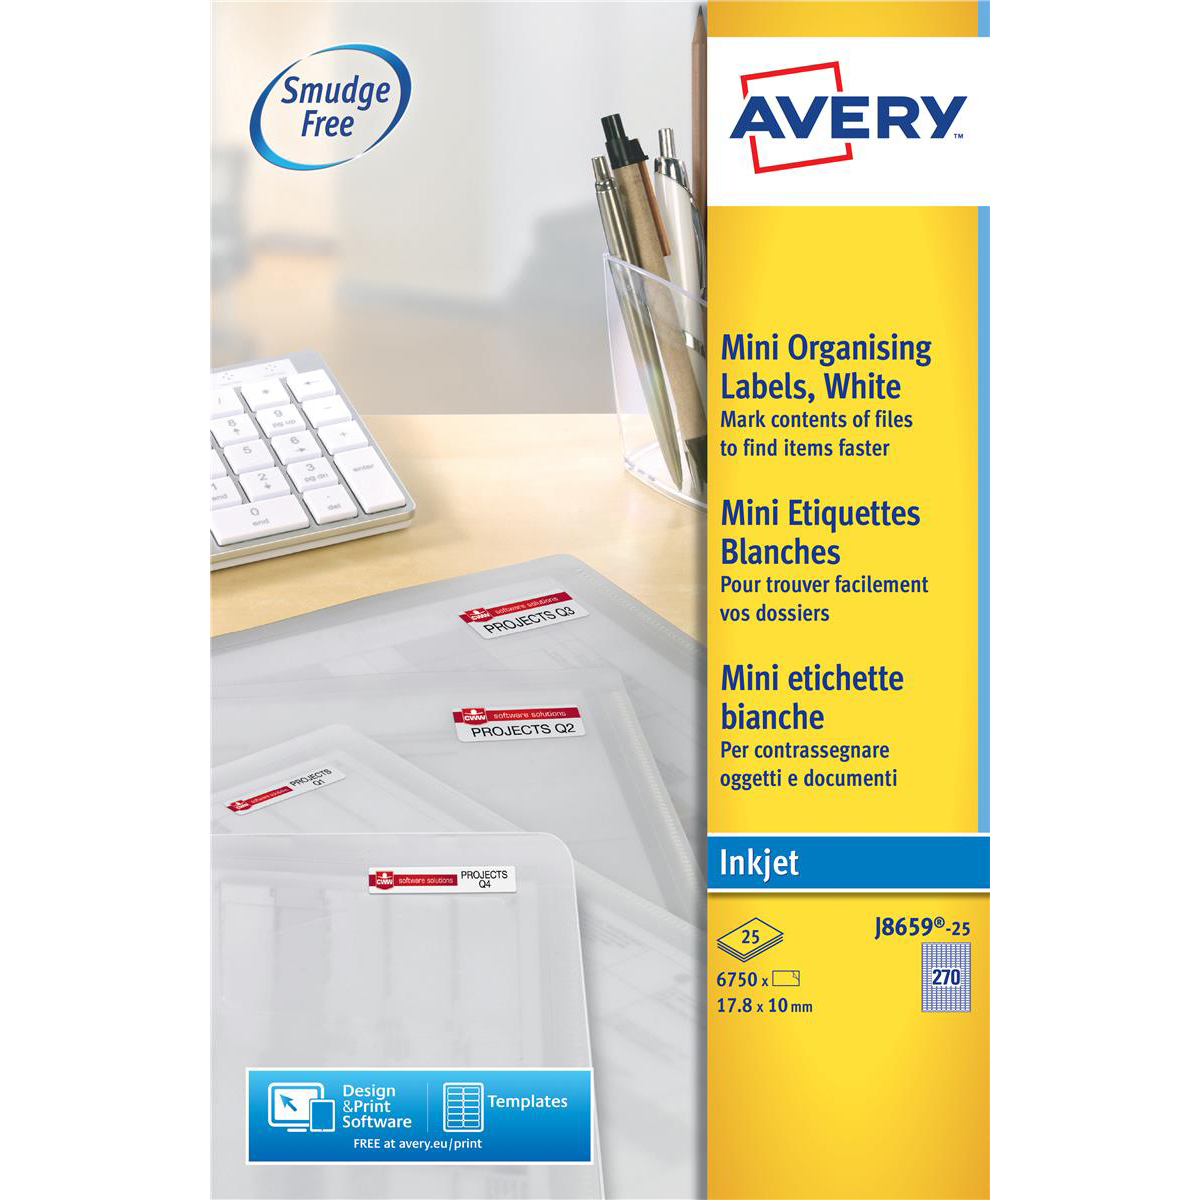 Address Avery Mini Multipurpose Labels Inkjet 270 per Sheet 17.8x10mm White Ref J8659REV-25 6750 Labels